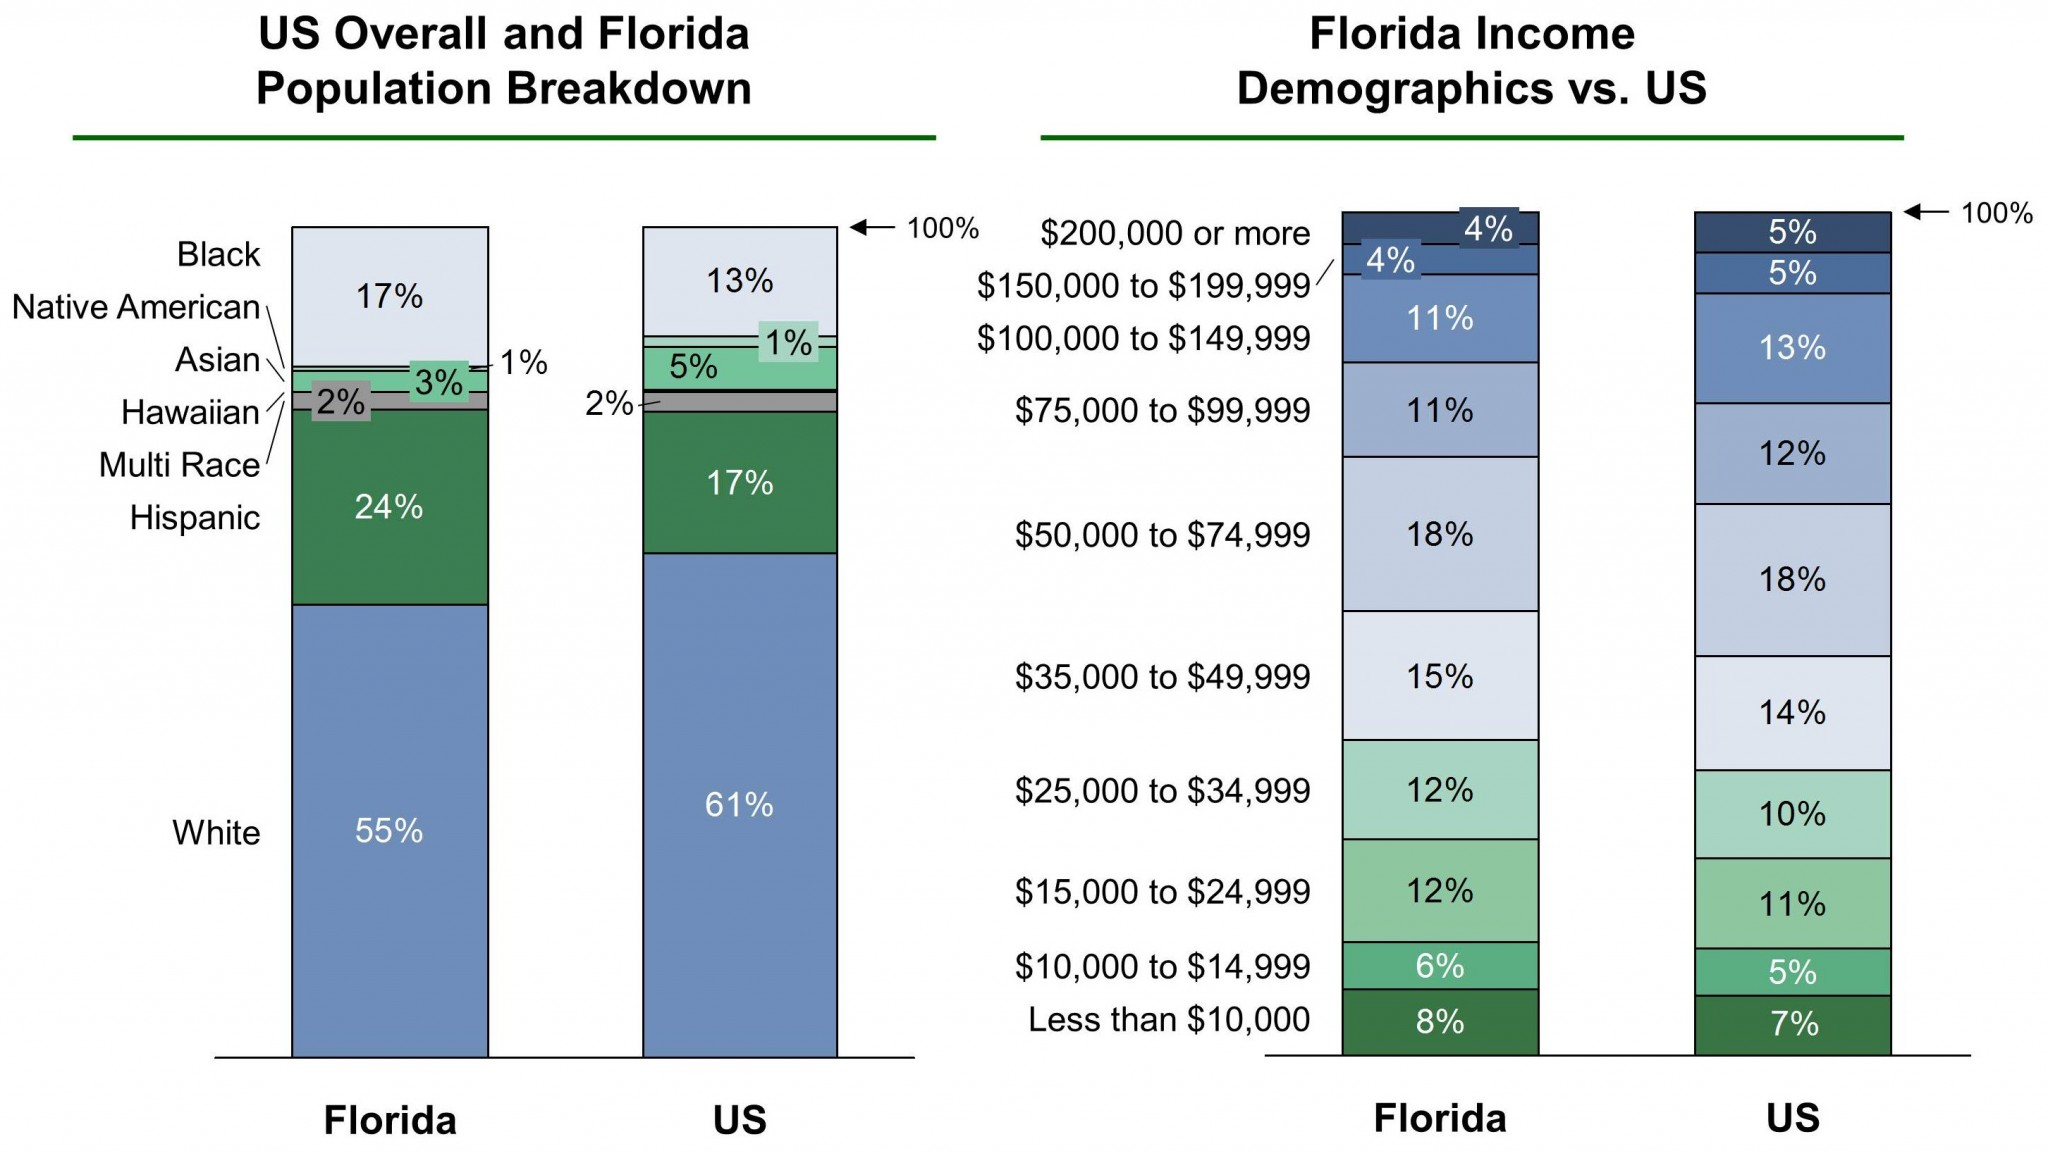 Florida EB-5 Regional Center Demographics VF